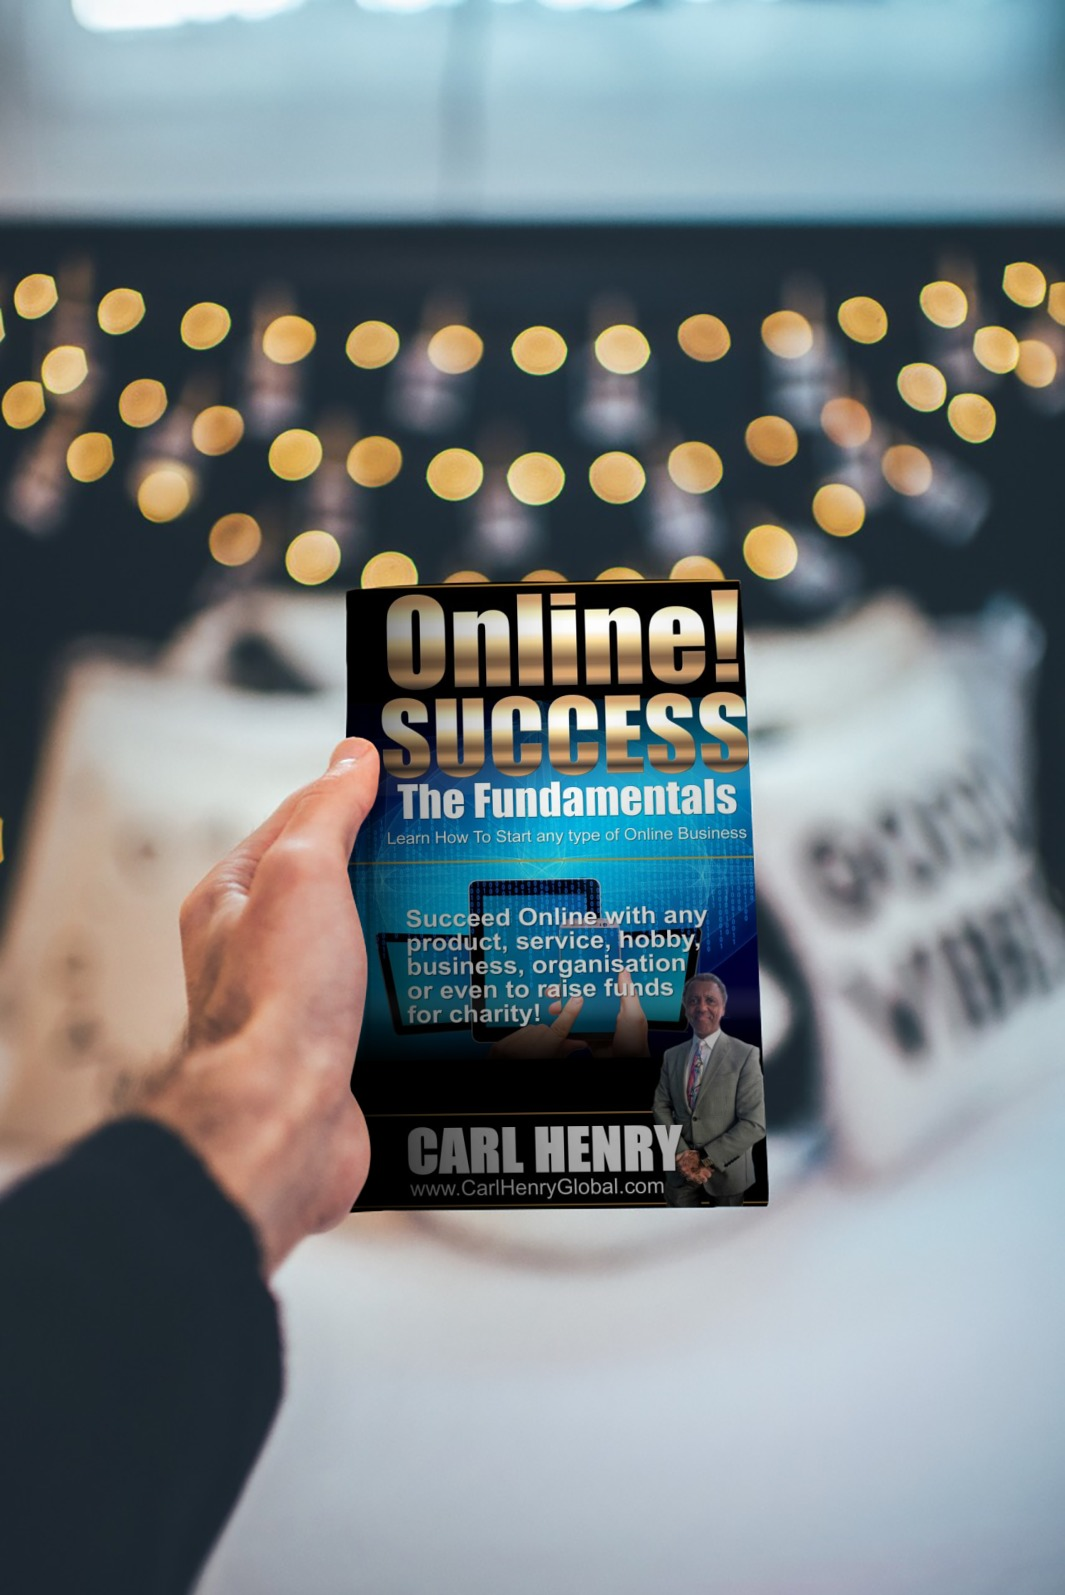 Carl-Henry-ONLINE-SUCCESS39.jpg